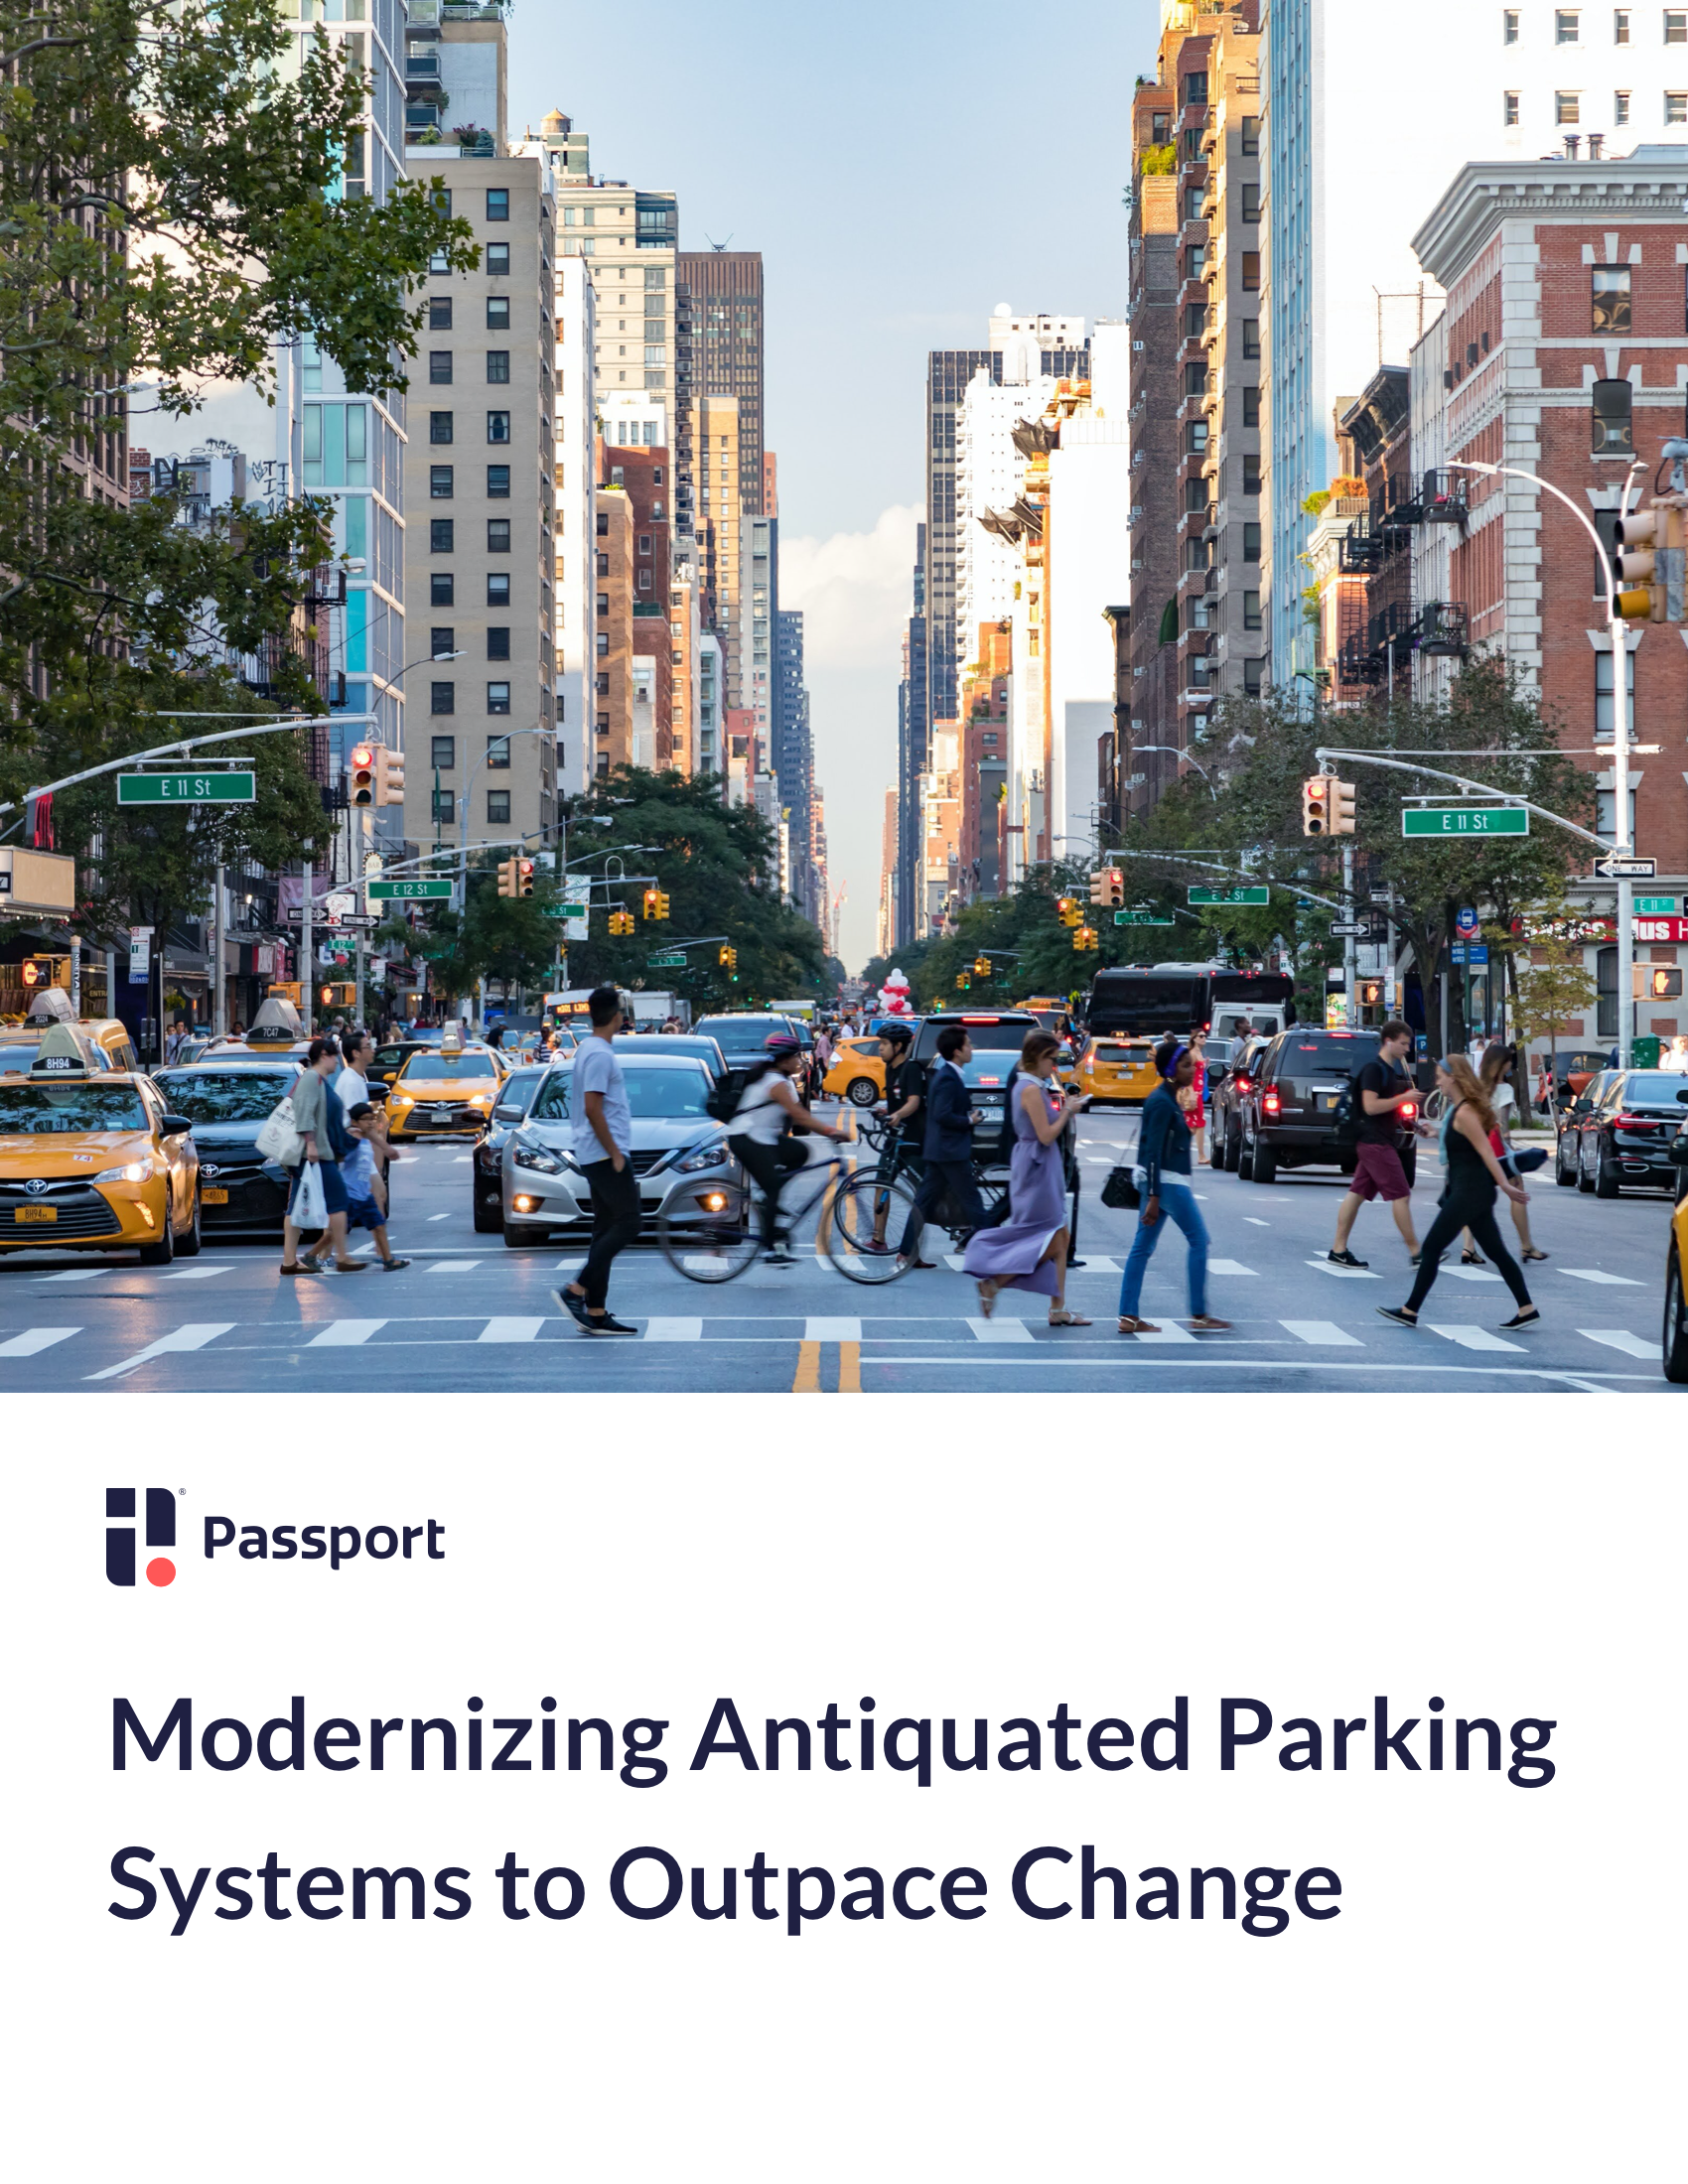 Modernizing Antiquated Parking Systems to Outpace Change